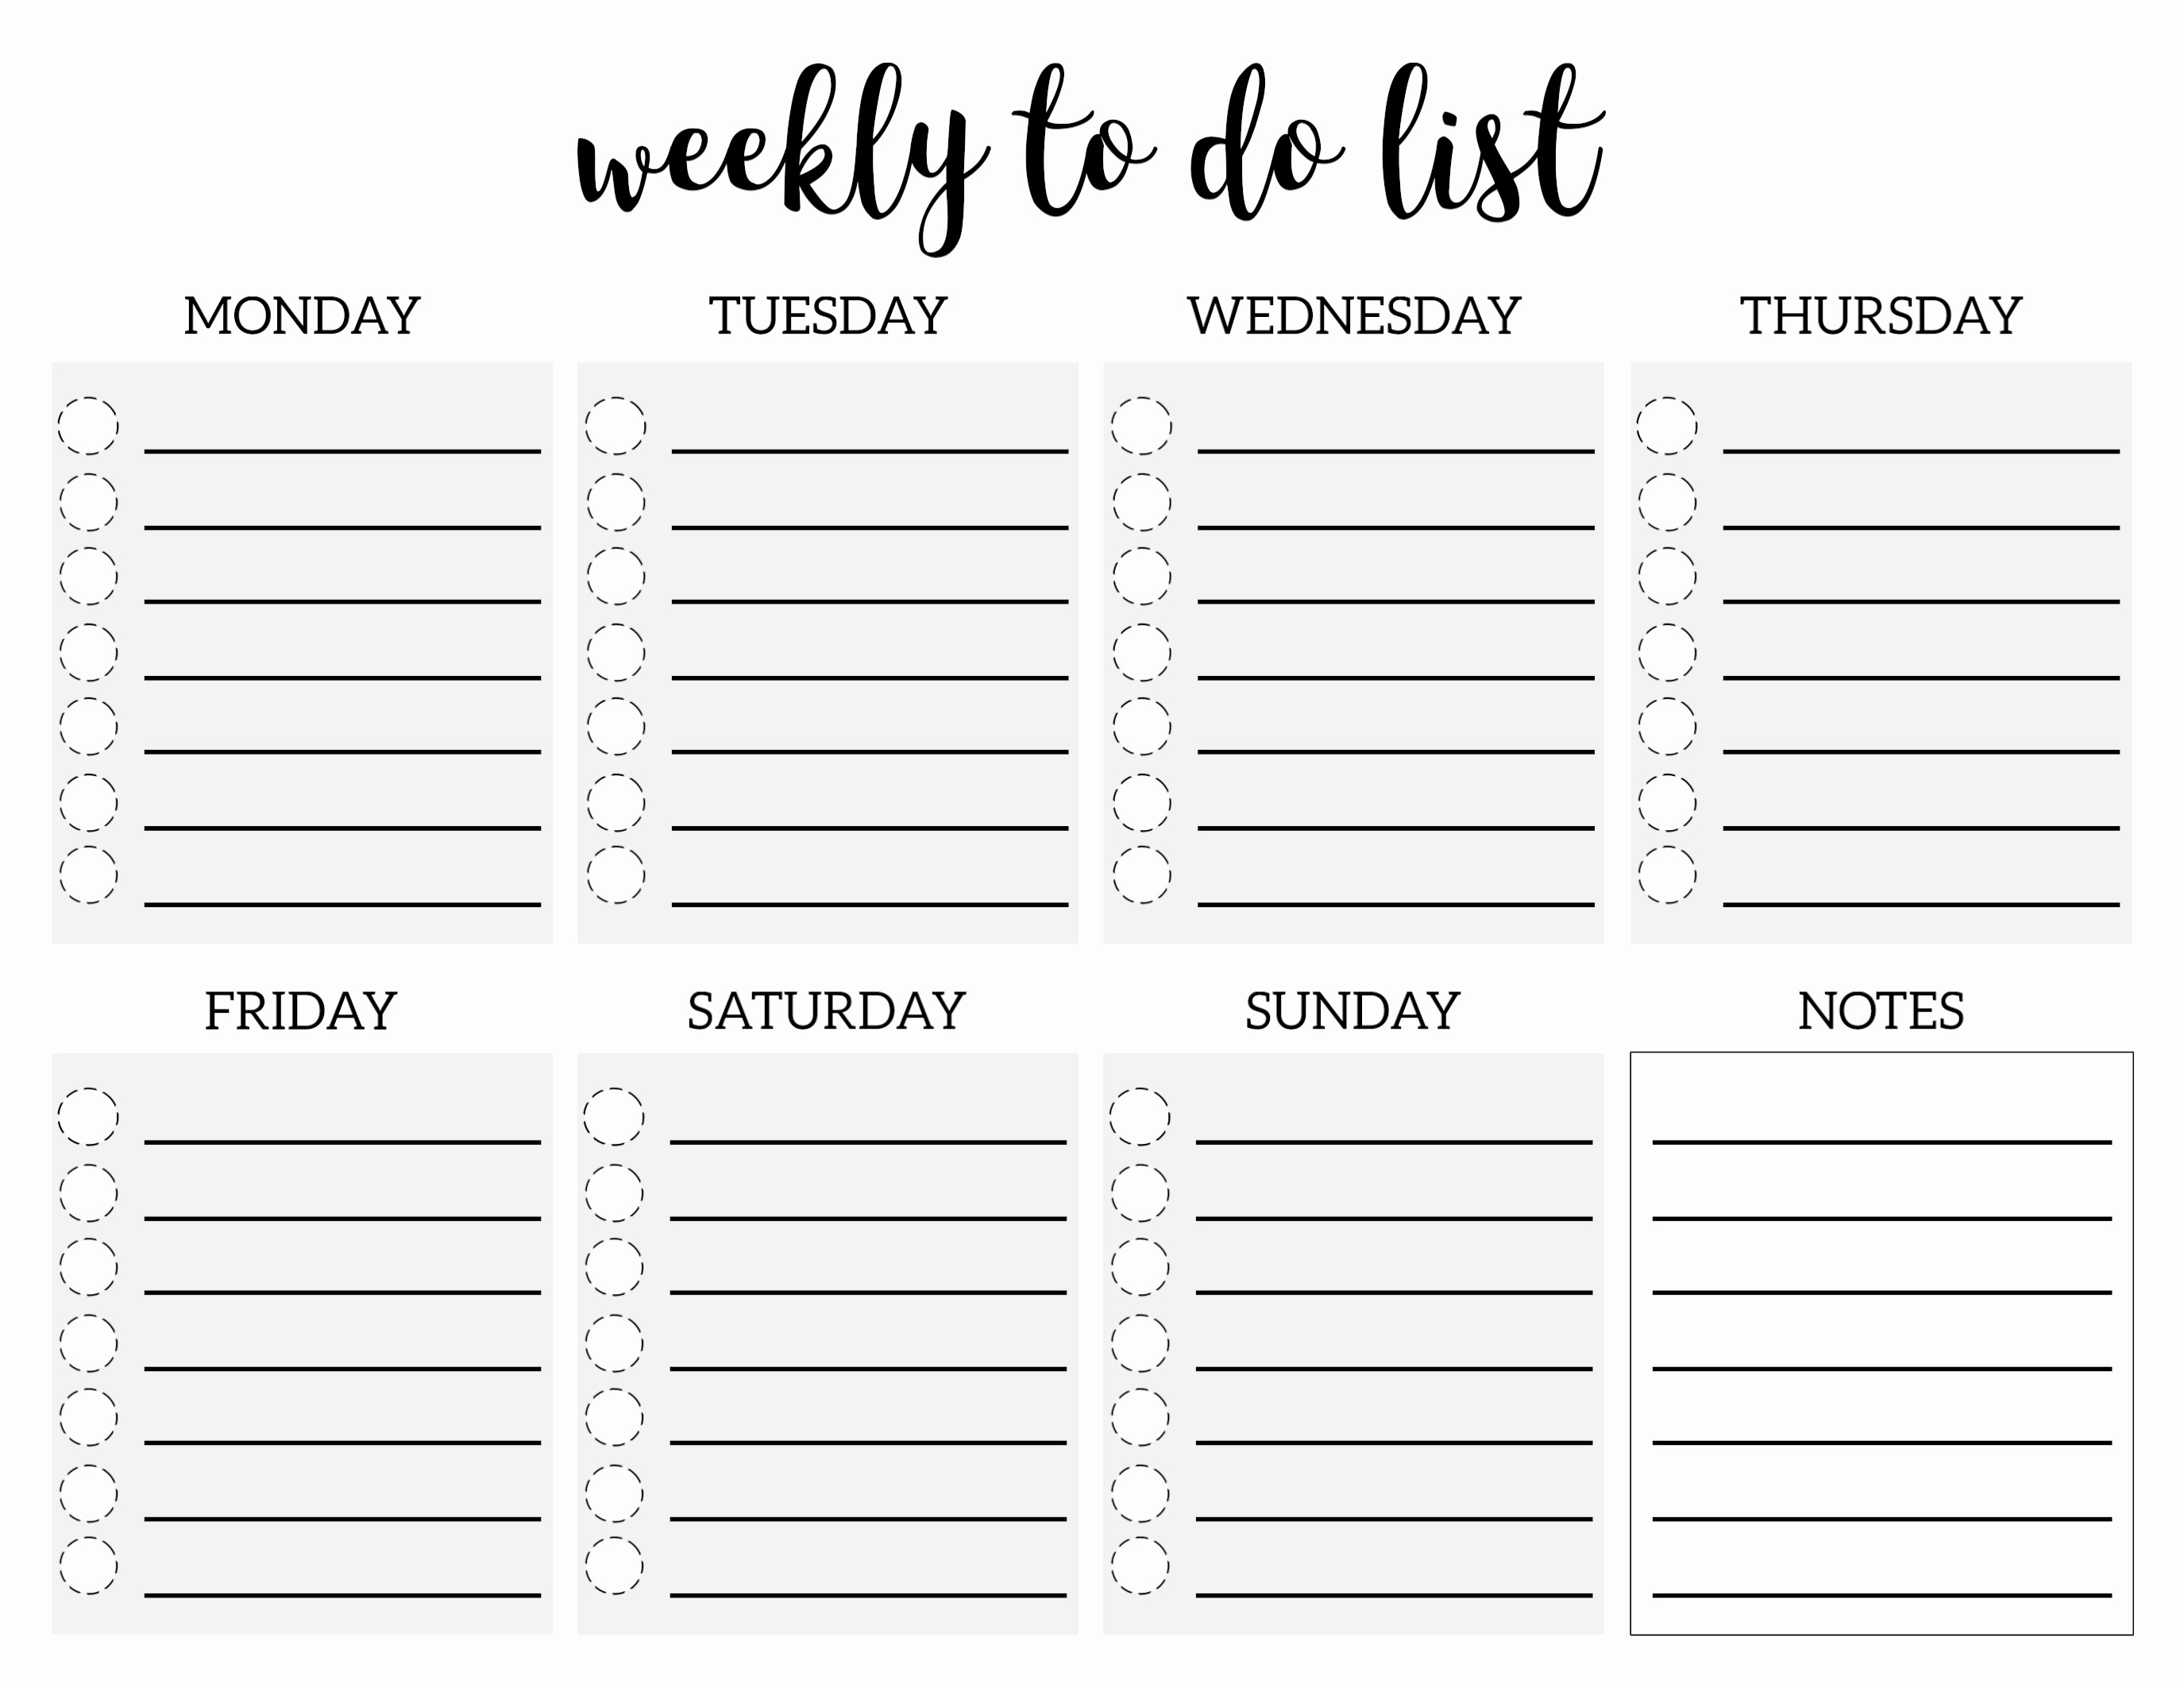 Printable to Do List Template New Weekly to Do List Printable Checklist Template Paper